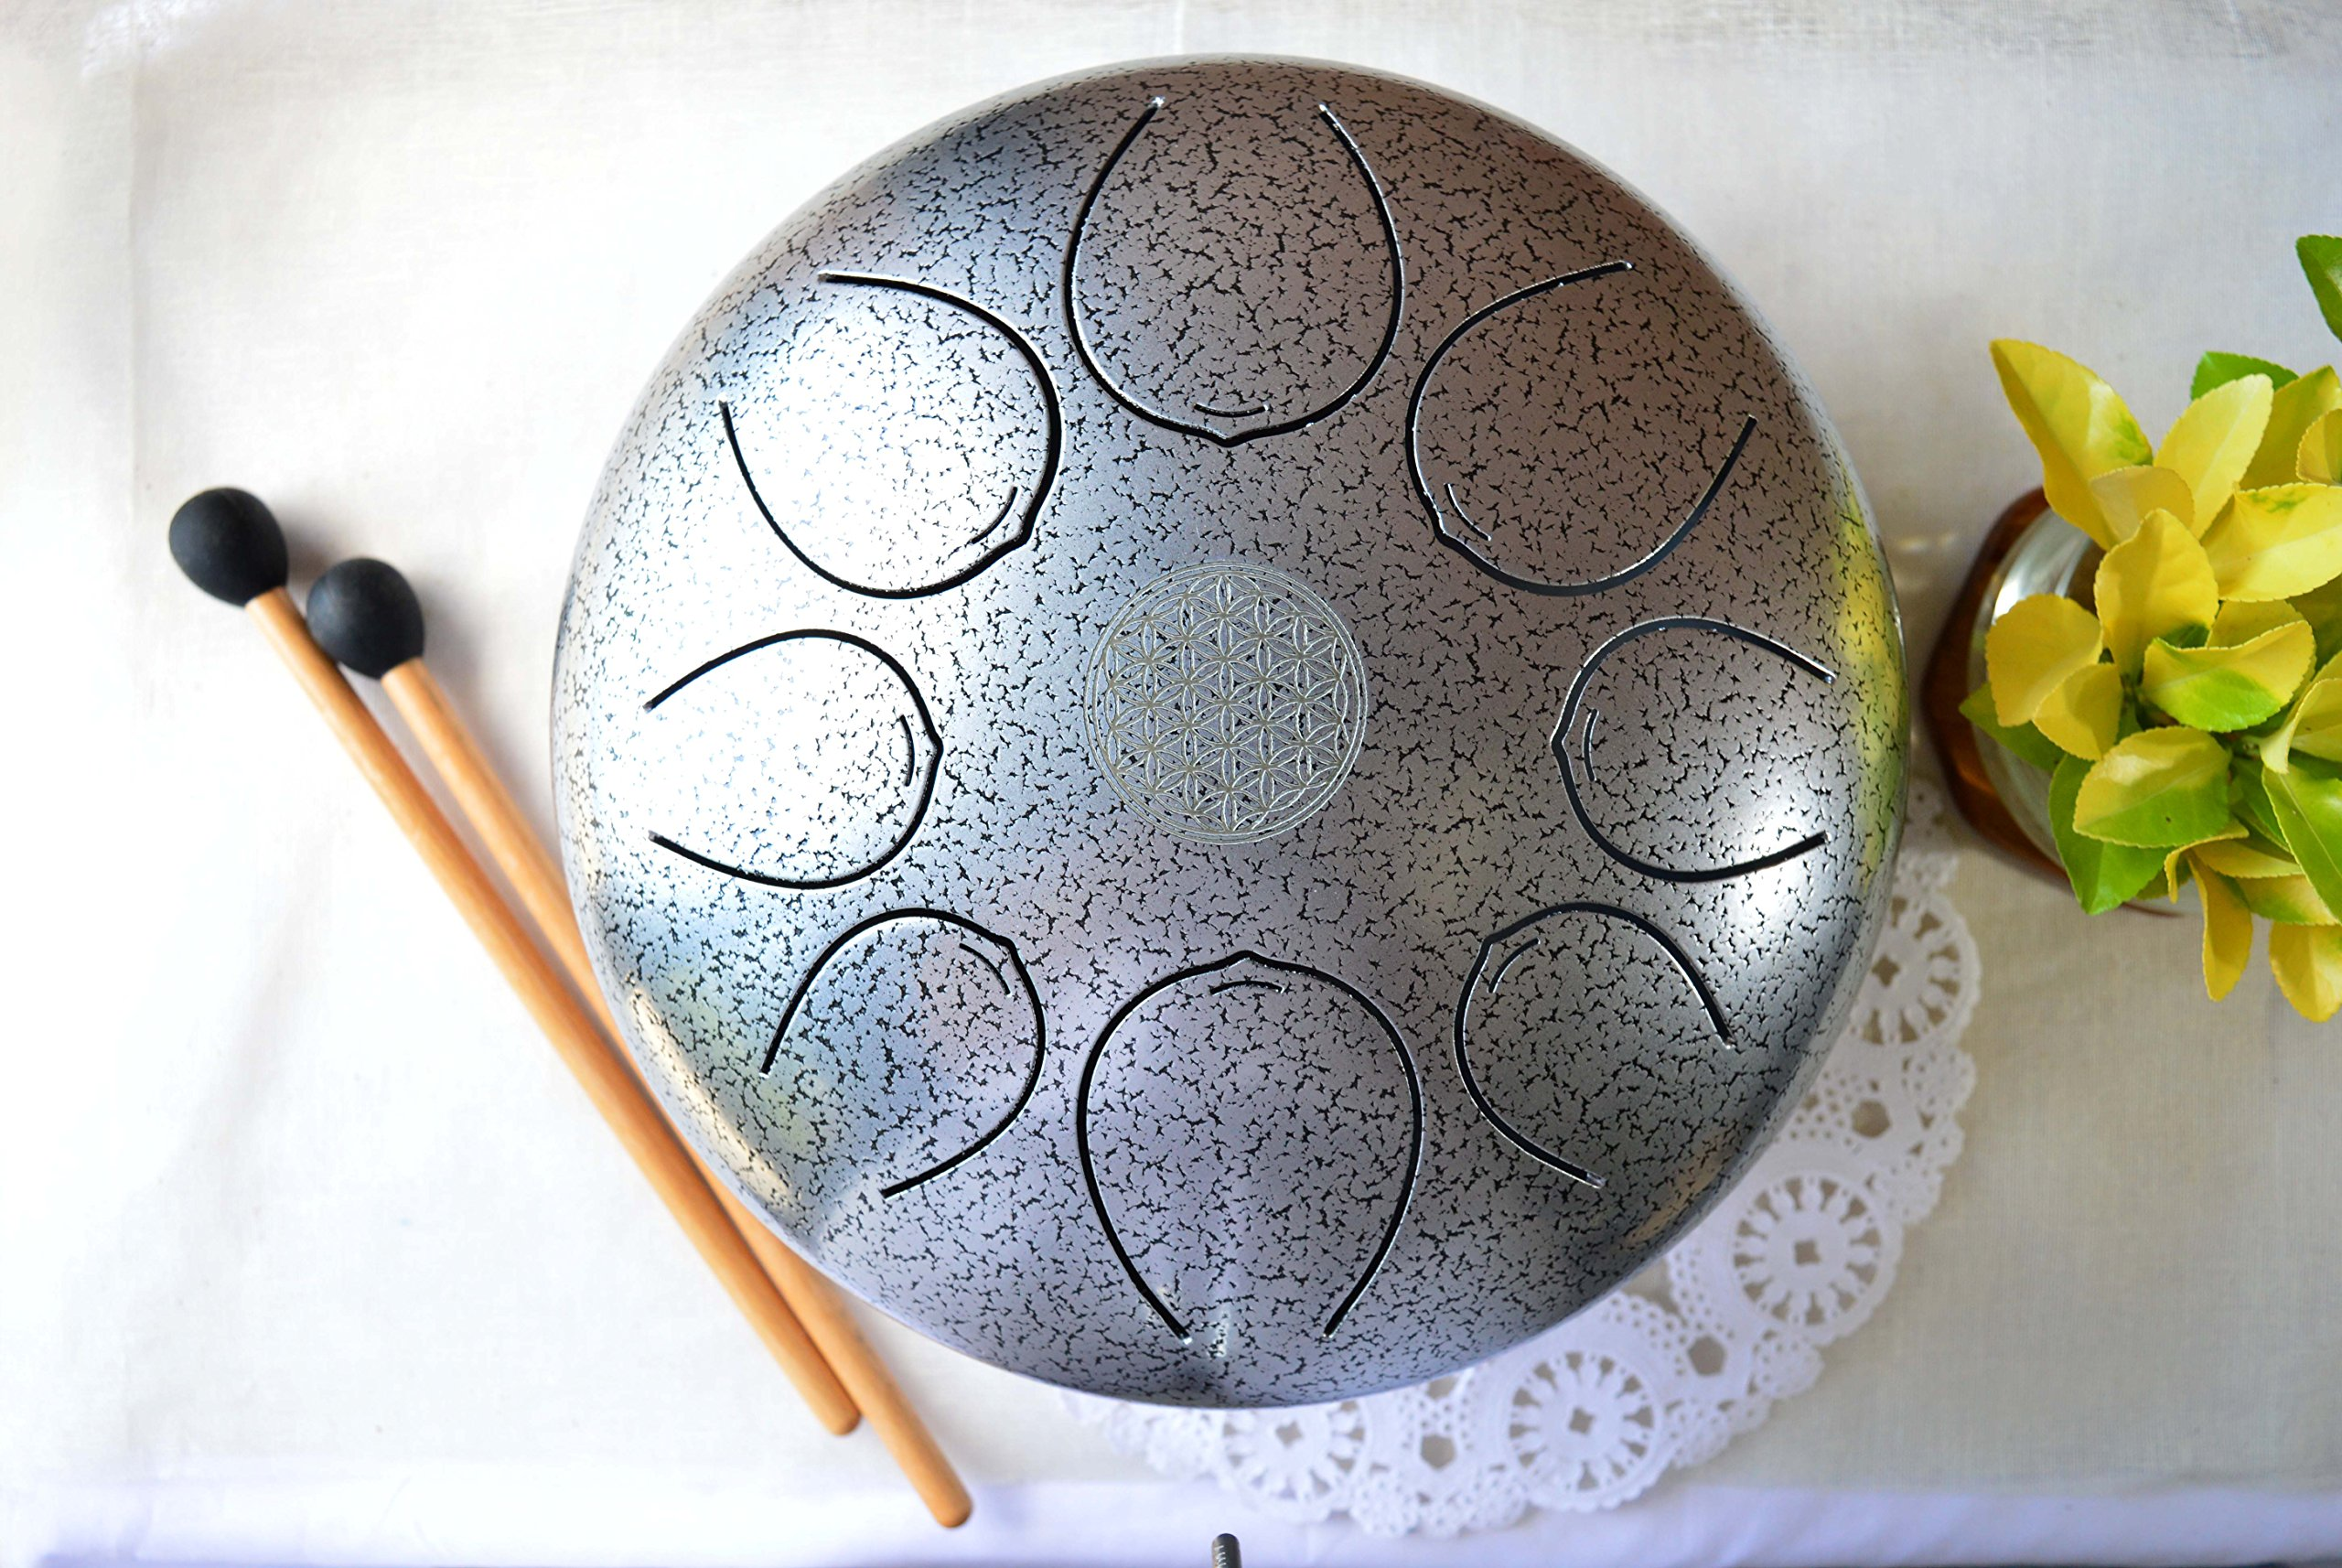 WuYou 10in Steel Tongue Drum Pentatonic Handpan Tank, Special 8 notes with free bag and 2 mallets